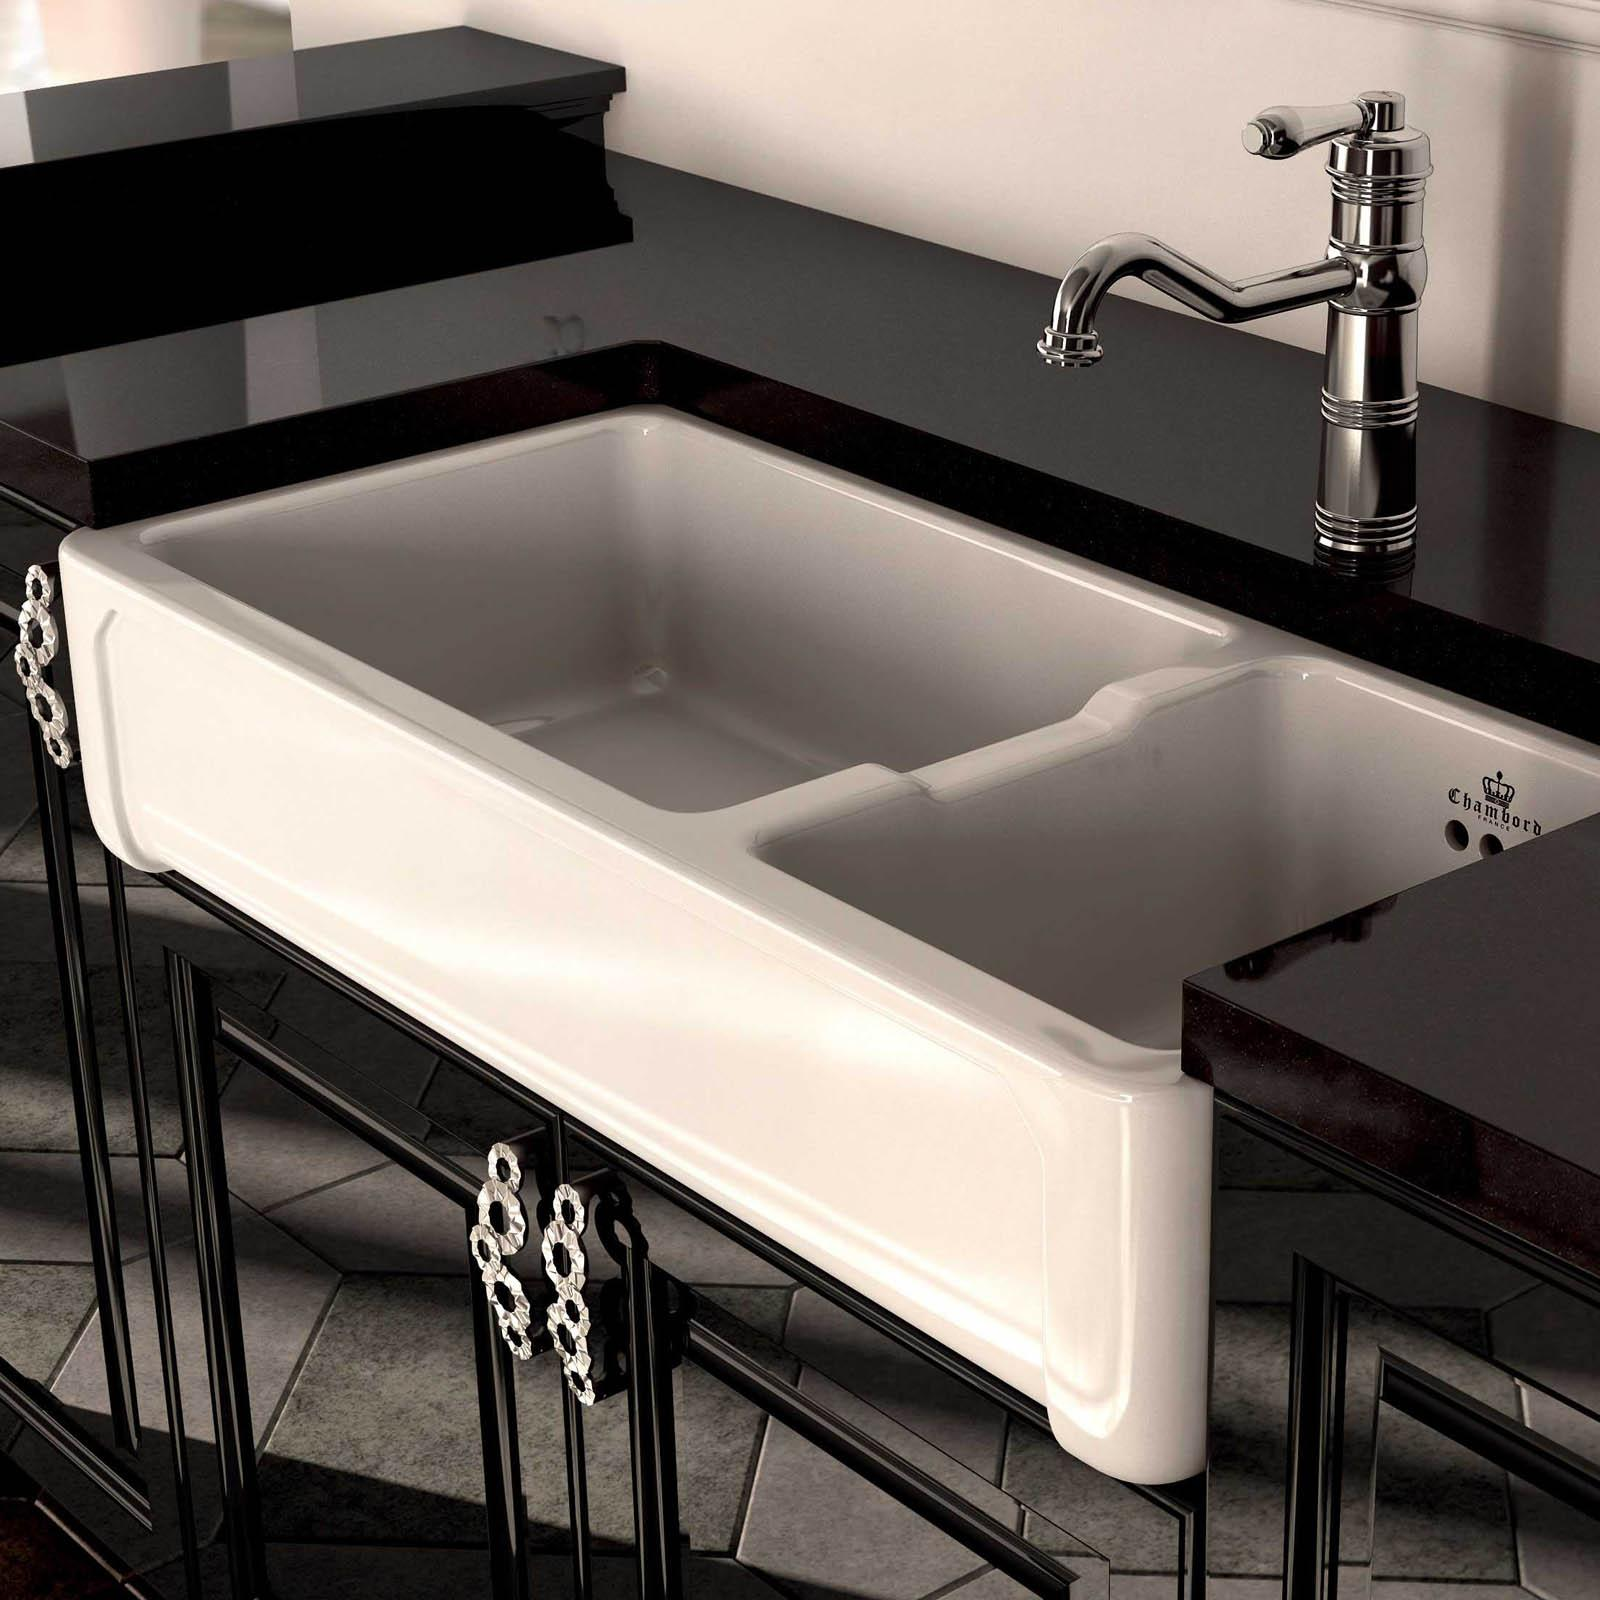 High-quality sink Henri III - one and a half bowl, ceramic - ambience 3